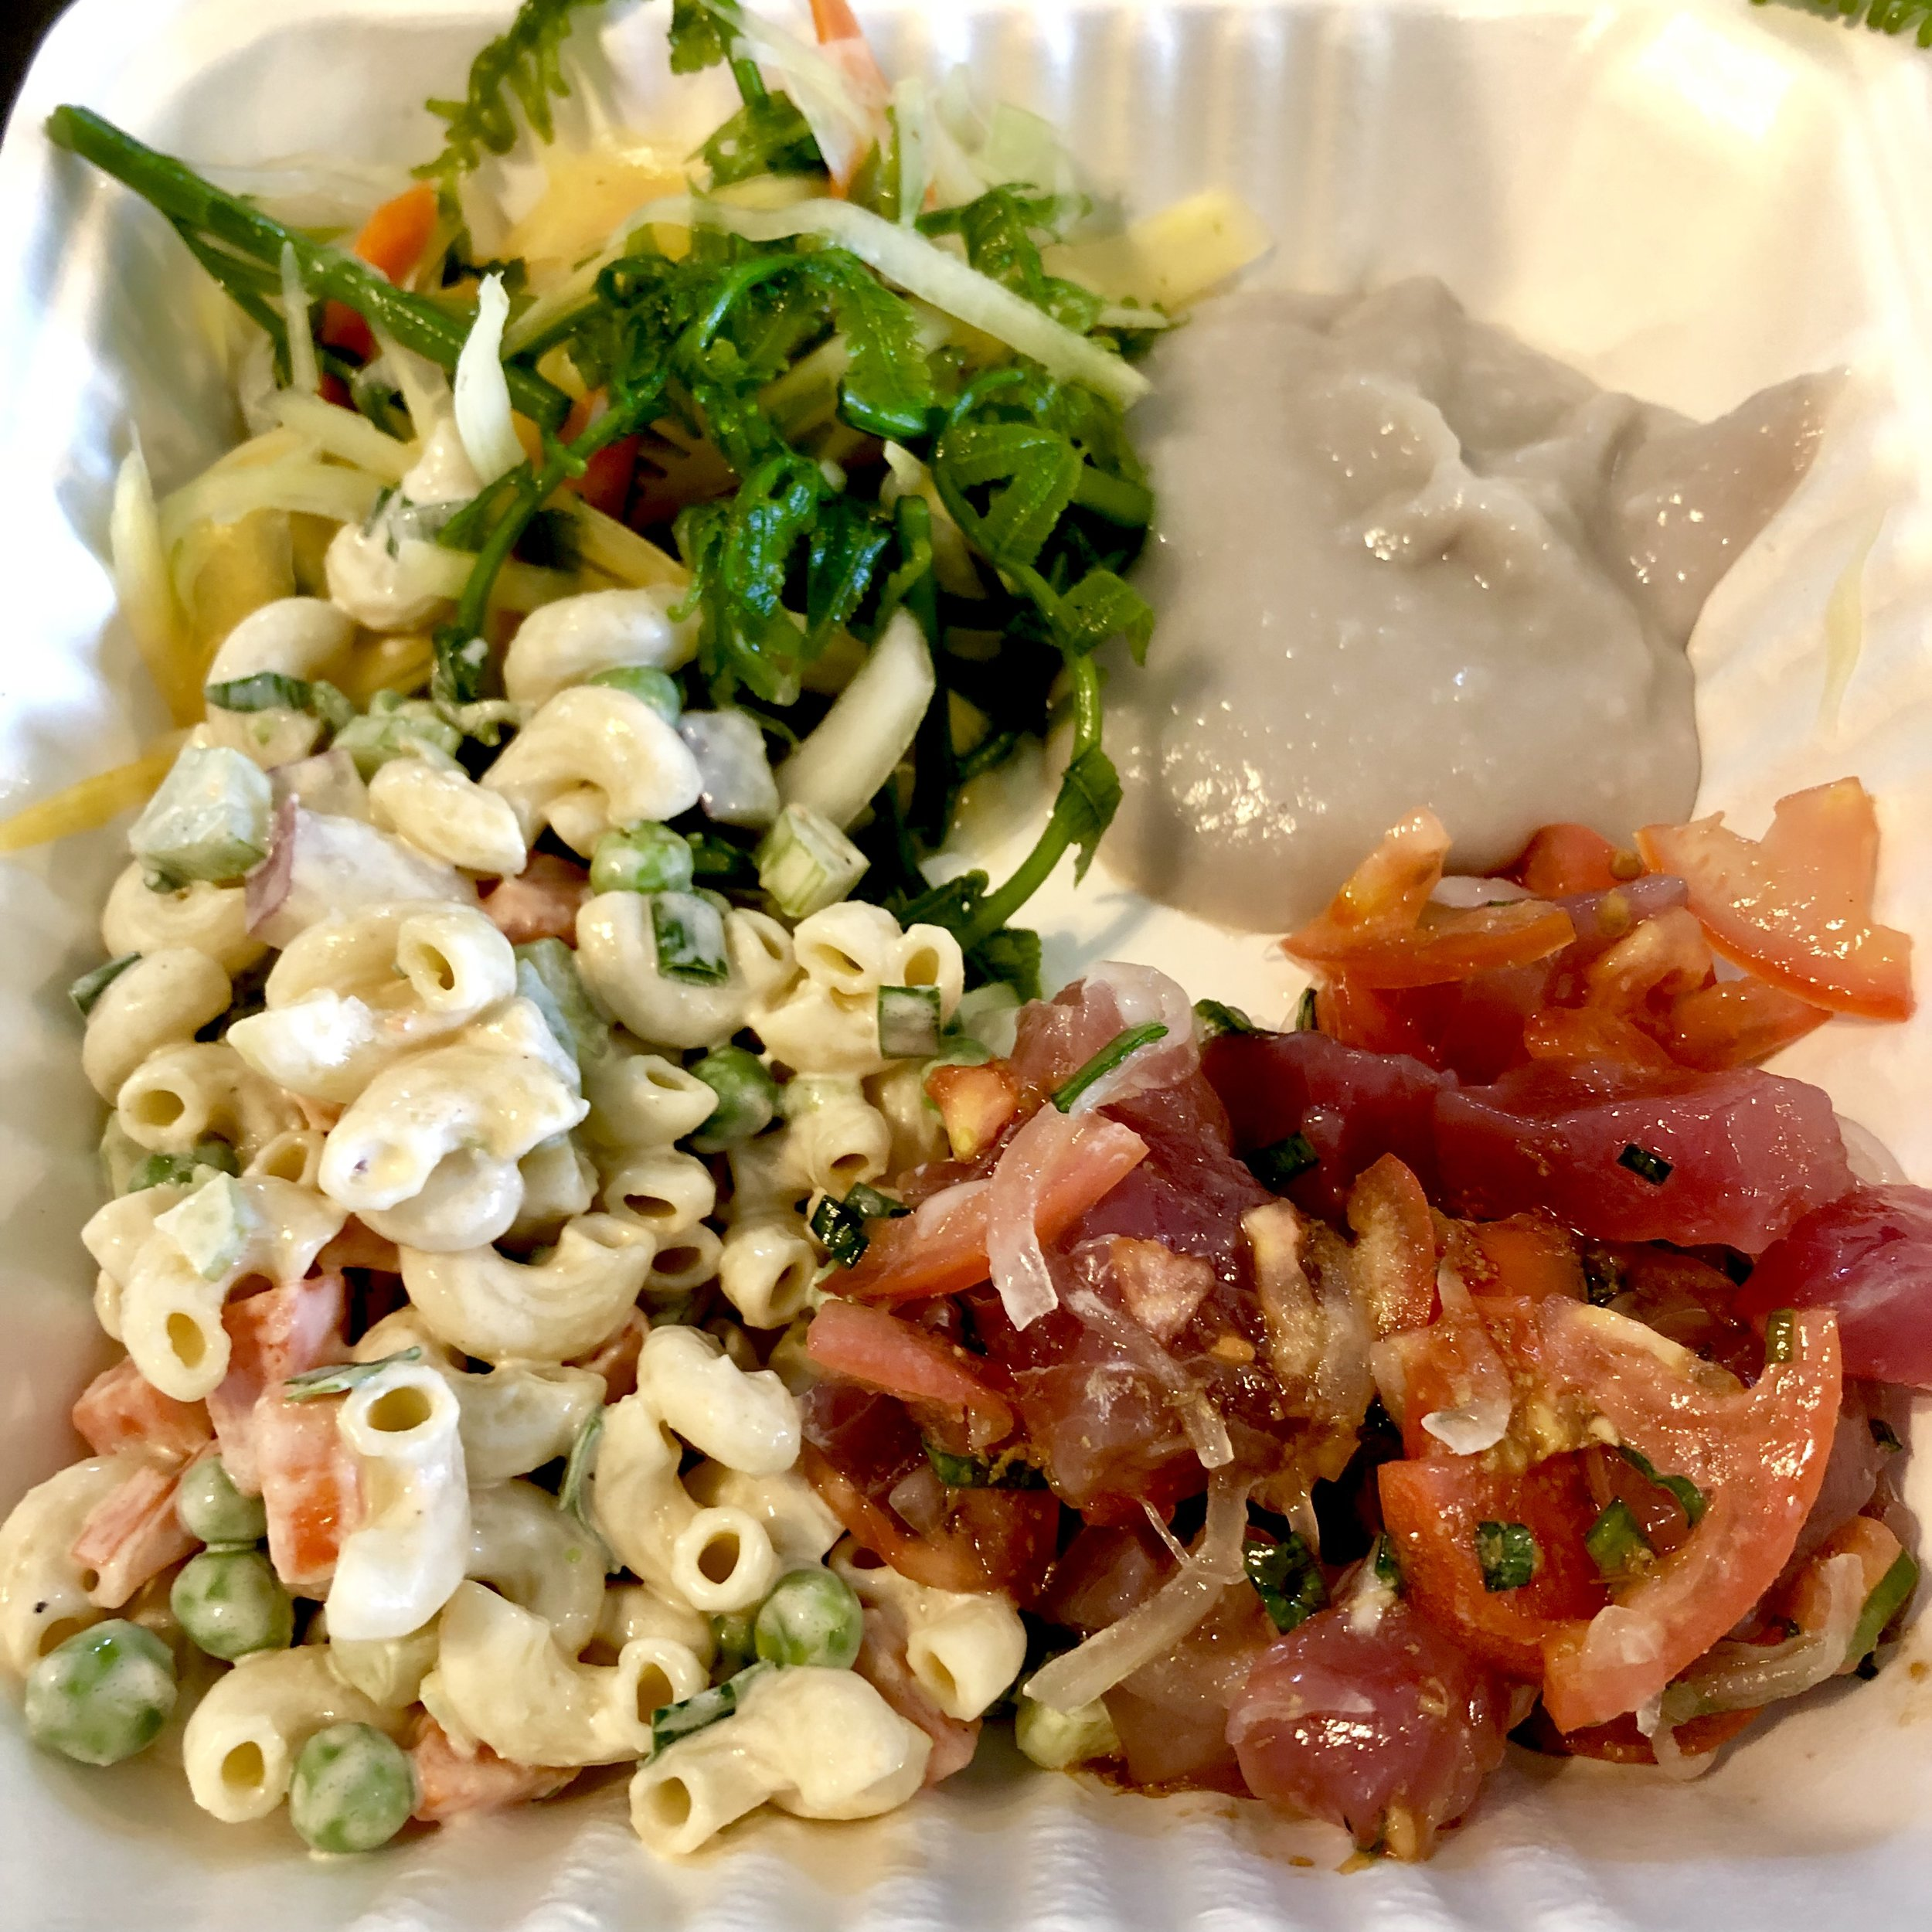 Cold Hawaiian Plate Lunch - Mac Salad, Green Papaya & Pohole Salad, Keanae Poi, Ahi Poke. Paired with (not pictured) Kalua Pork and Cabbage, white rice and brownie with coconut haupia pudding for Ehman Productions and Chef Gordon Ramsay for his new travel show on Nat Geo.